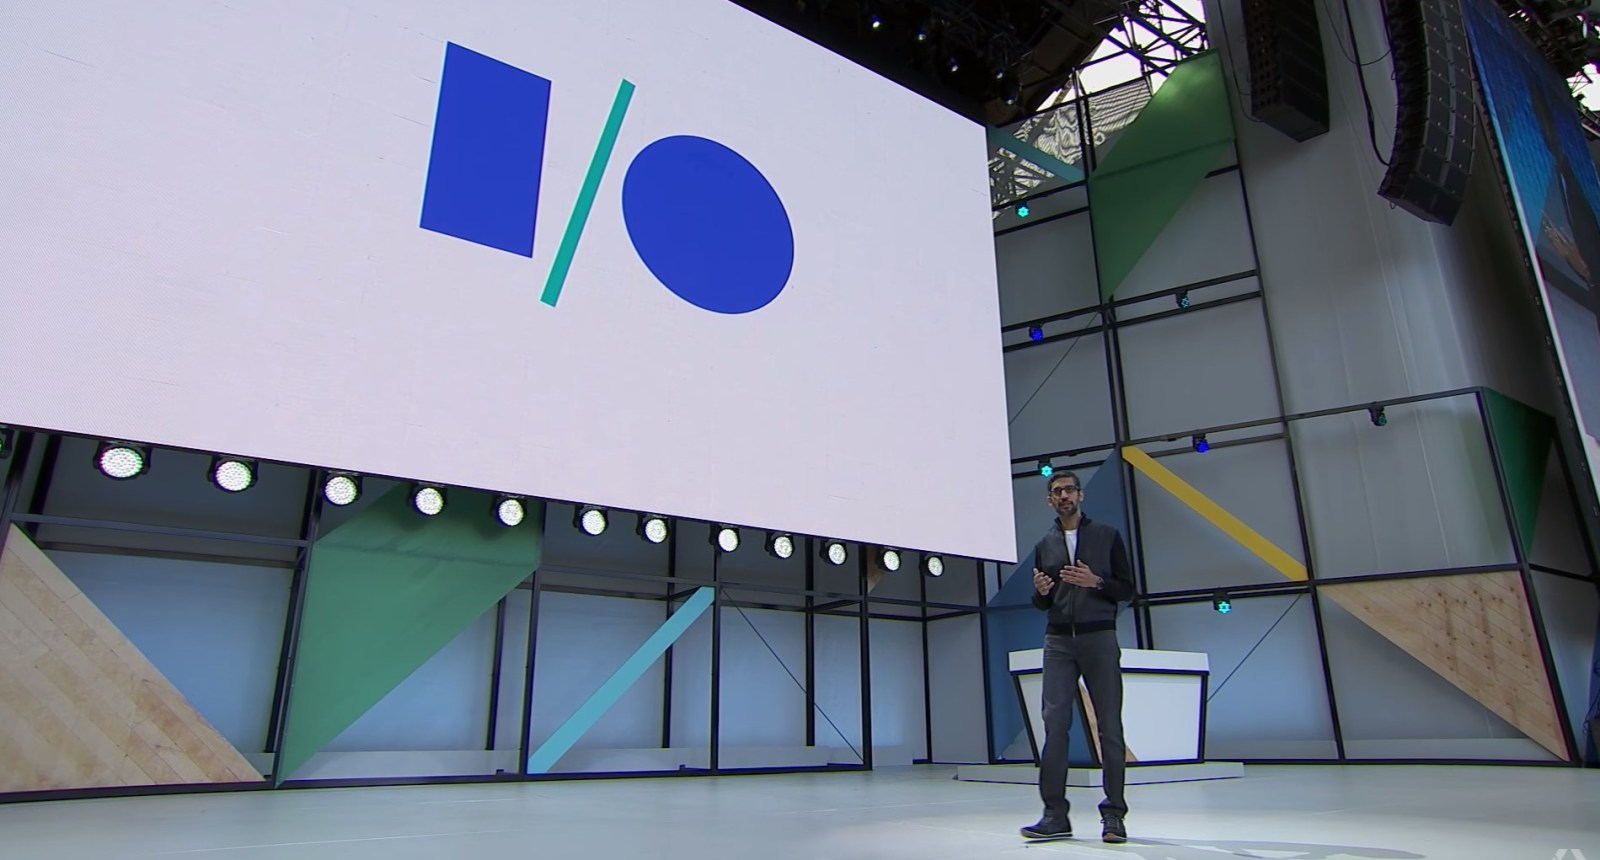 Missed the Google I/O keynote and breakout sessions? Here's how you can catch up